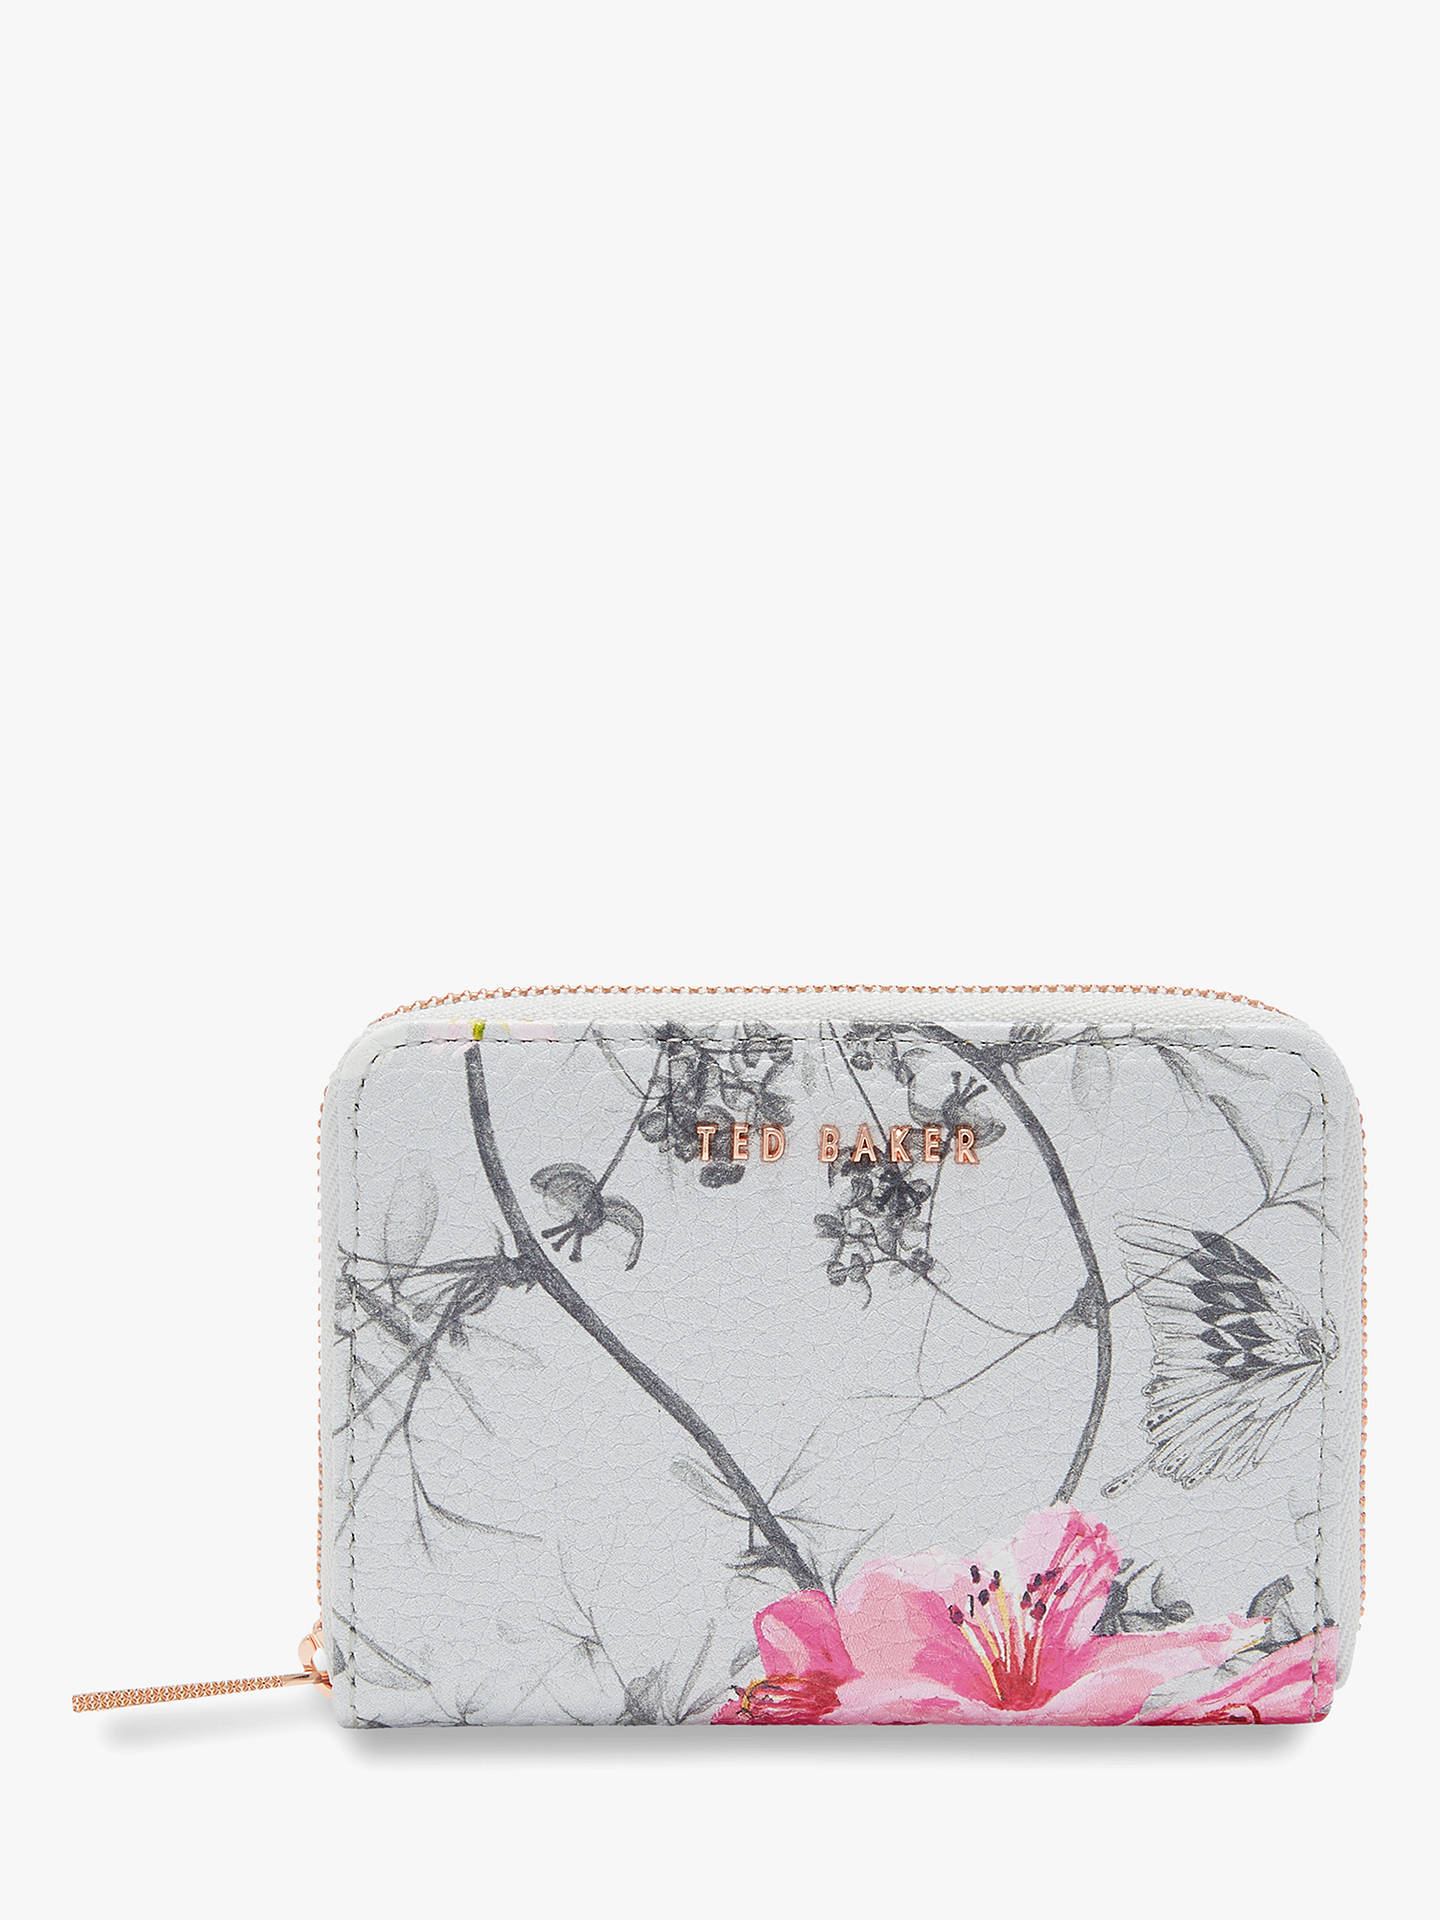 BuyTed Baker Inna Babylon Leather Purse, Grey Online at johnlewis.com